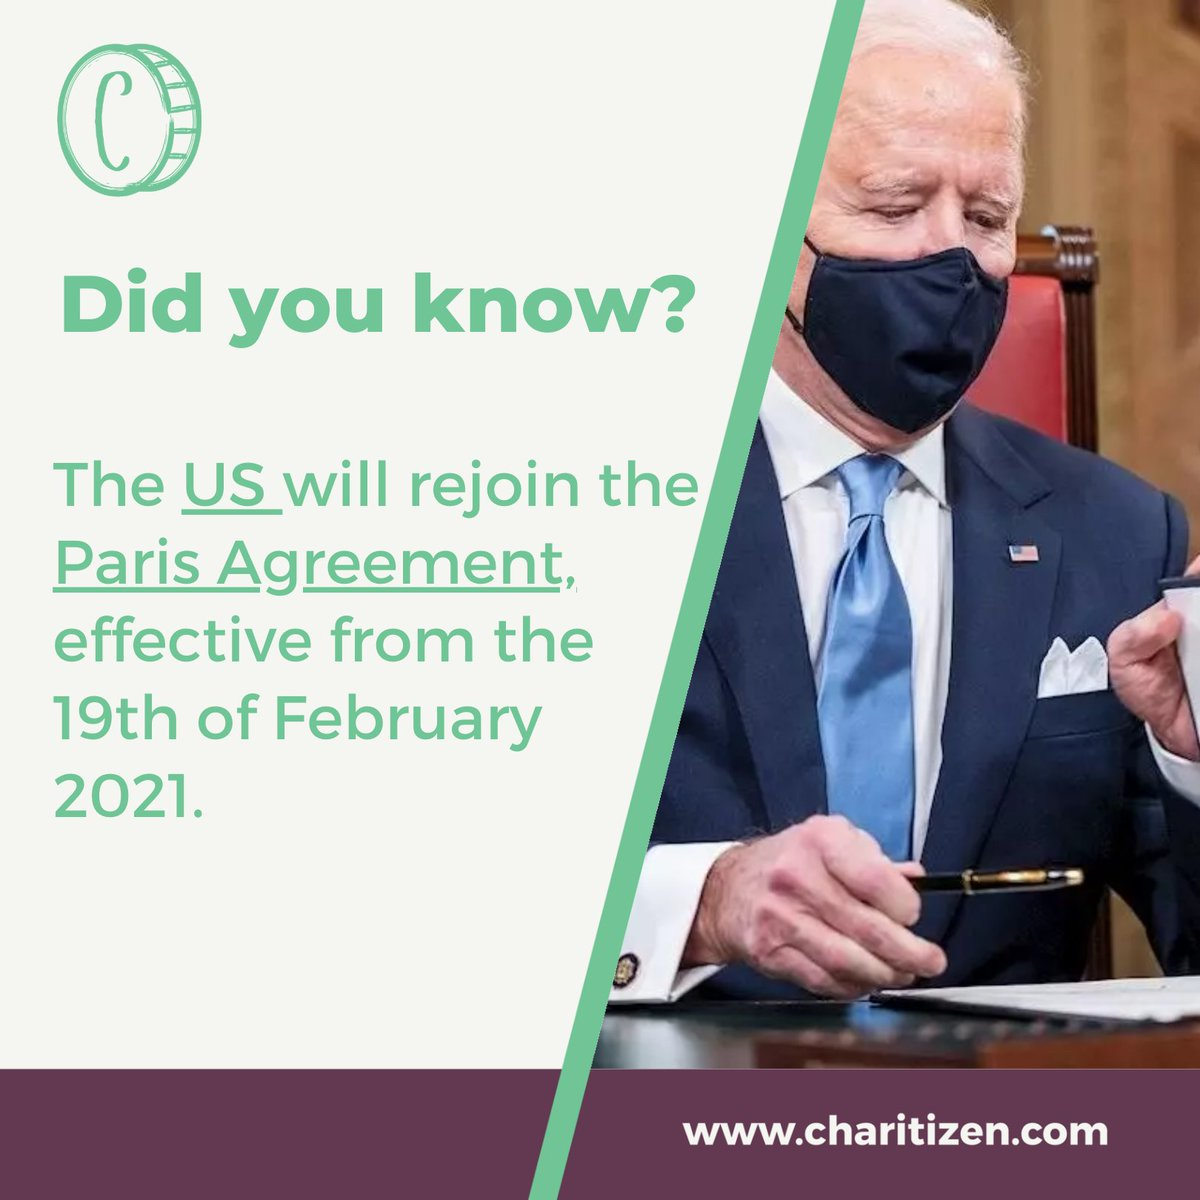 #JoeBiden reentered the #US into the #ParisAgreement as a first step in a series of actions planned to respond to the #ClimateCrisis. At @Charitizen, #ClimateChange is an issue close to our heart, so we will often support #sustainable projects tackling this problem. #charitizen